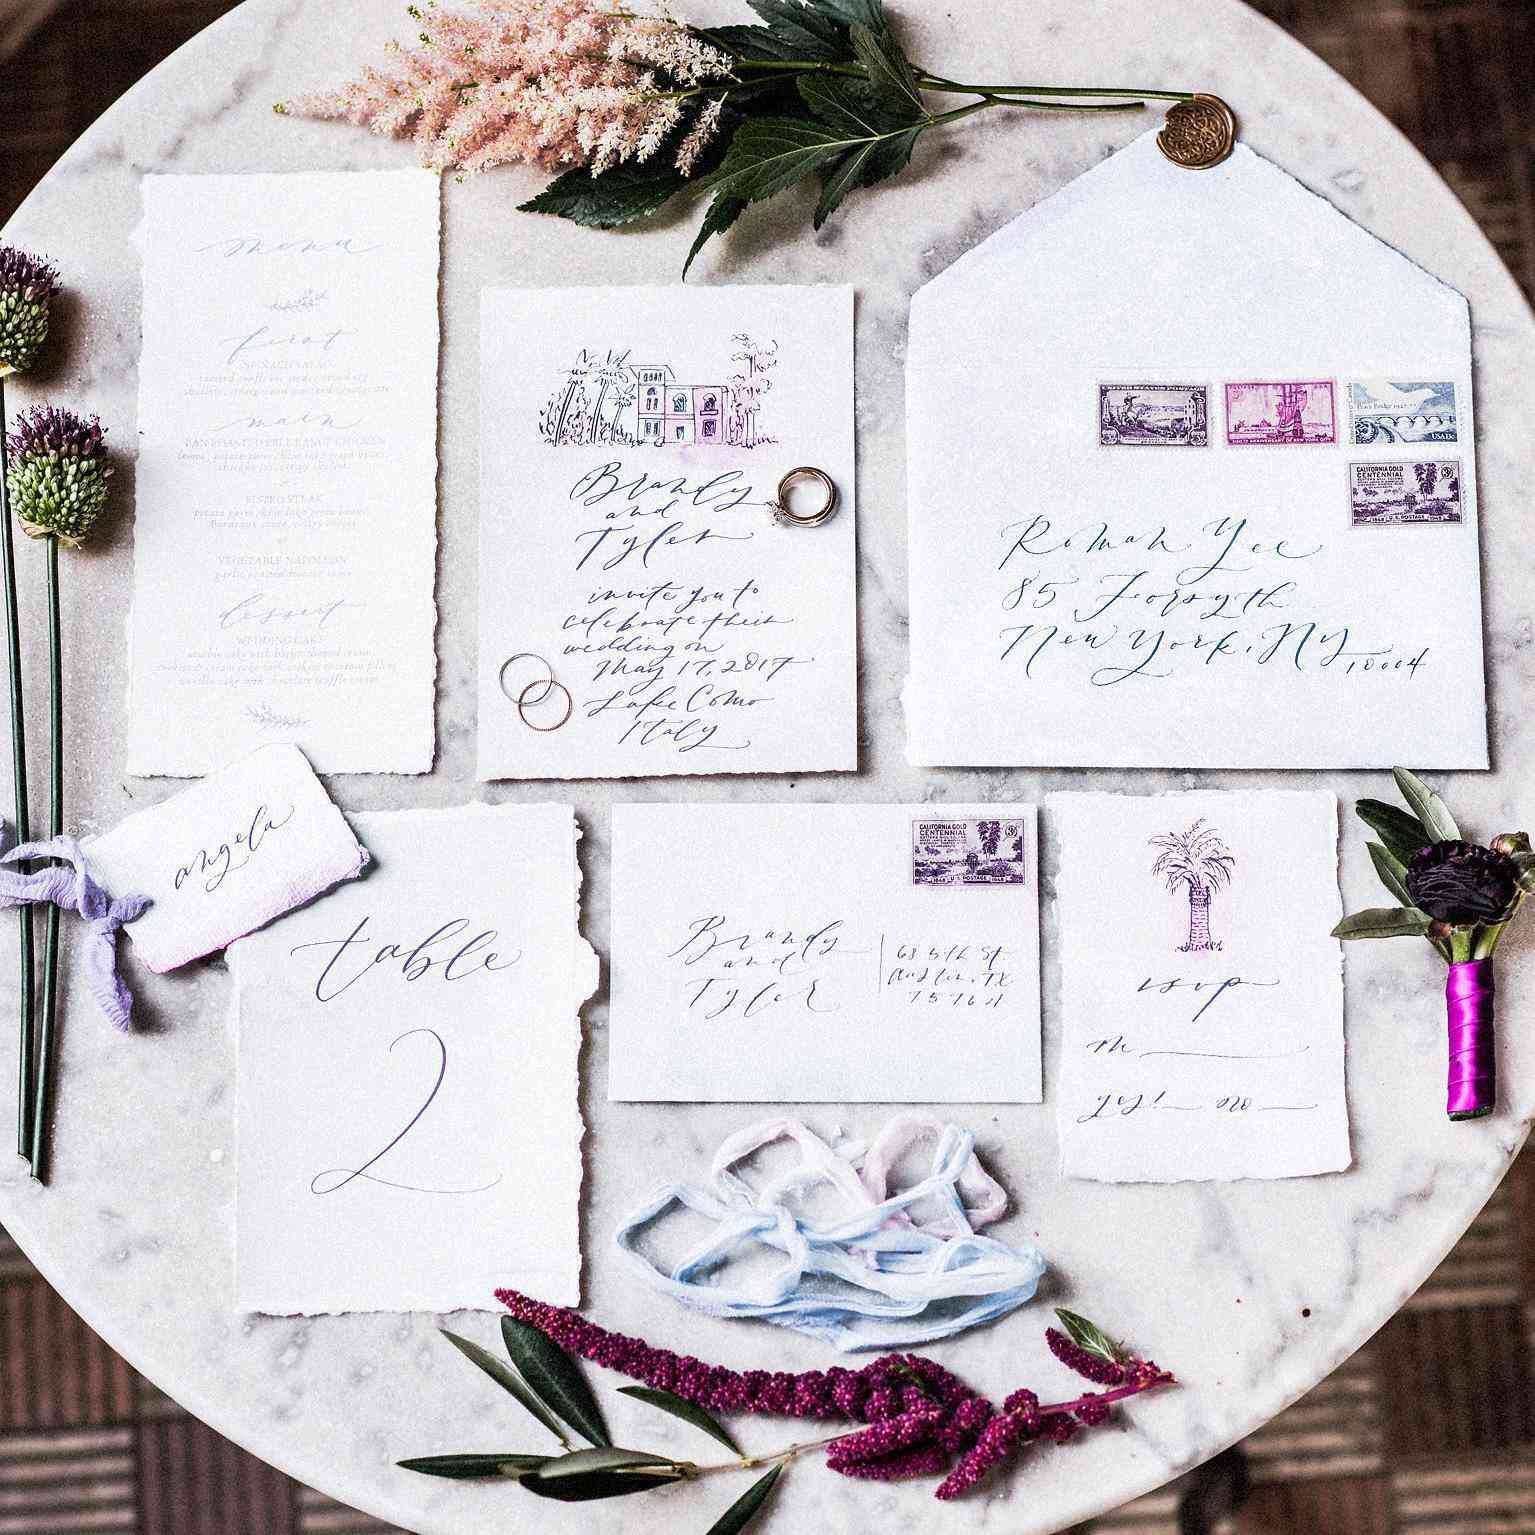 Story Tips For Creating Wedding Website: 10 Amazing Wedding Invitations Websites To Create Your Own